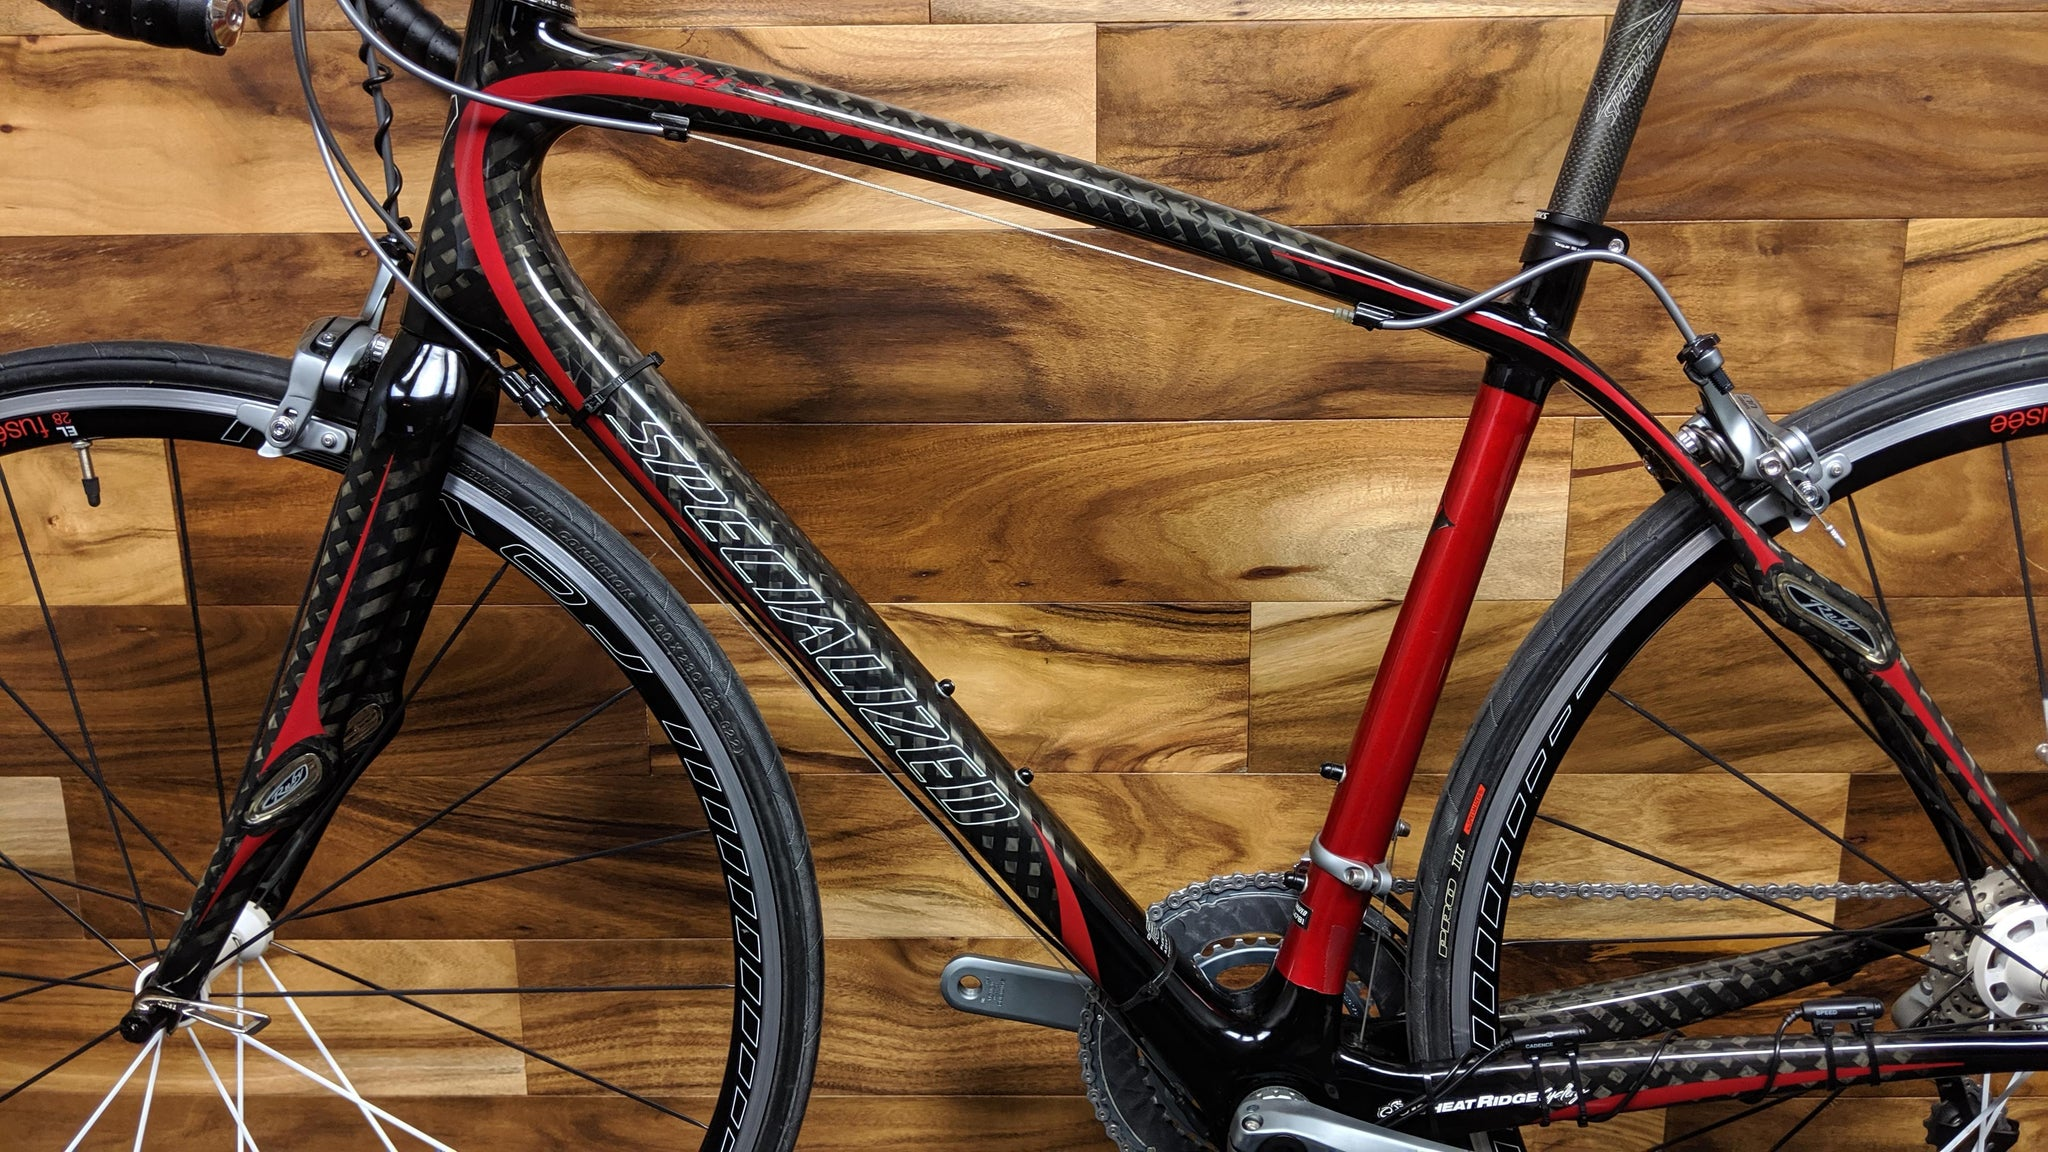 2010 SPECIALIZED RUBY EXPERT CARBON